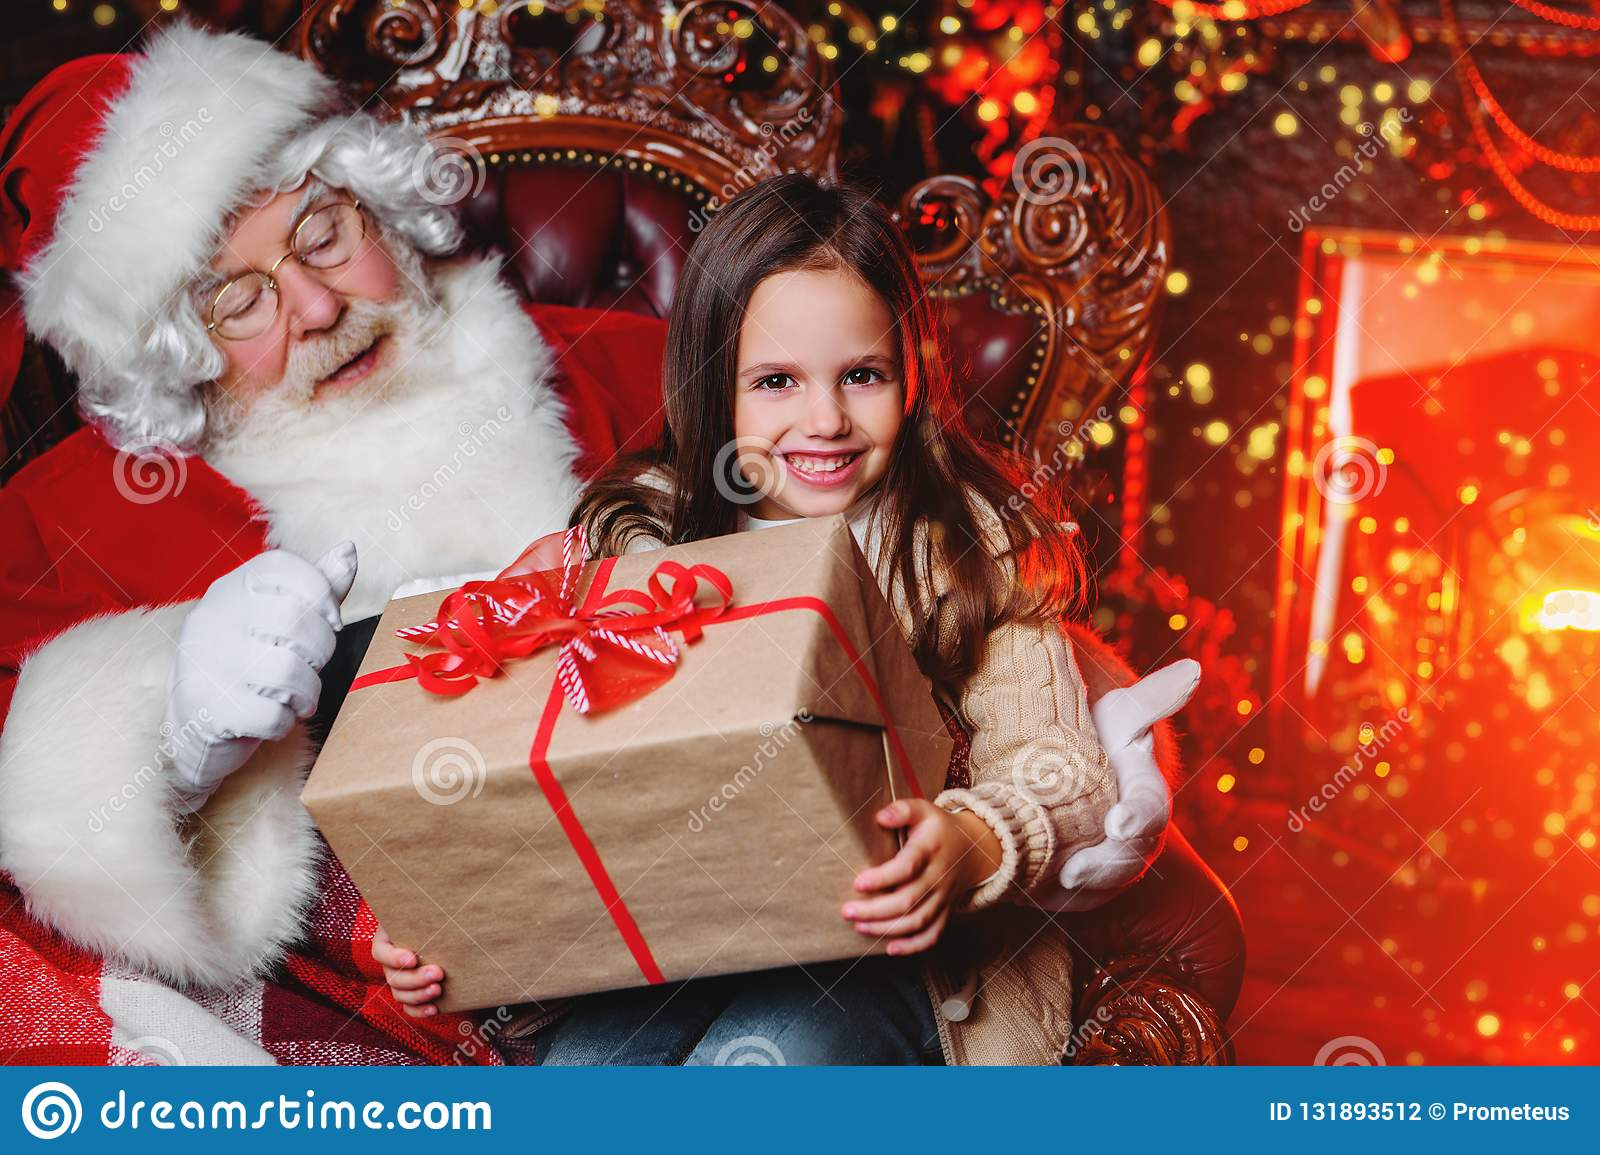 Getting present from santa